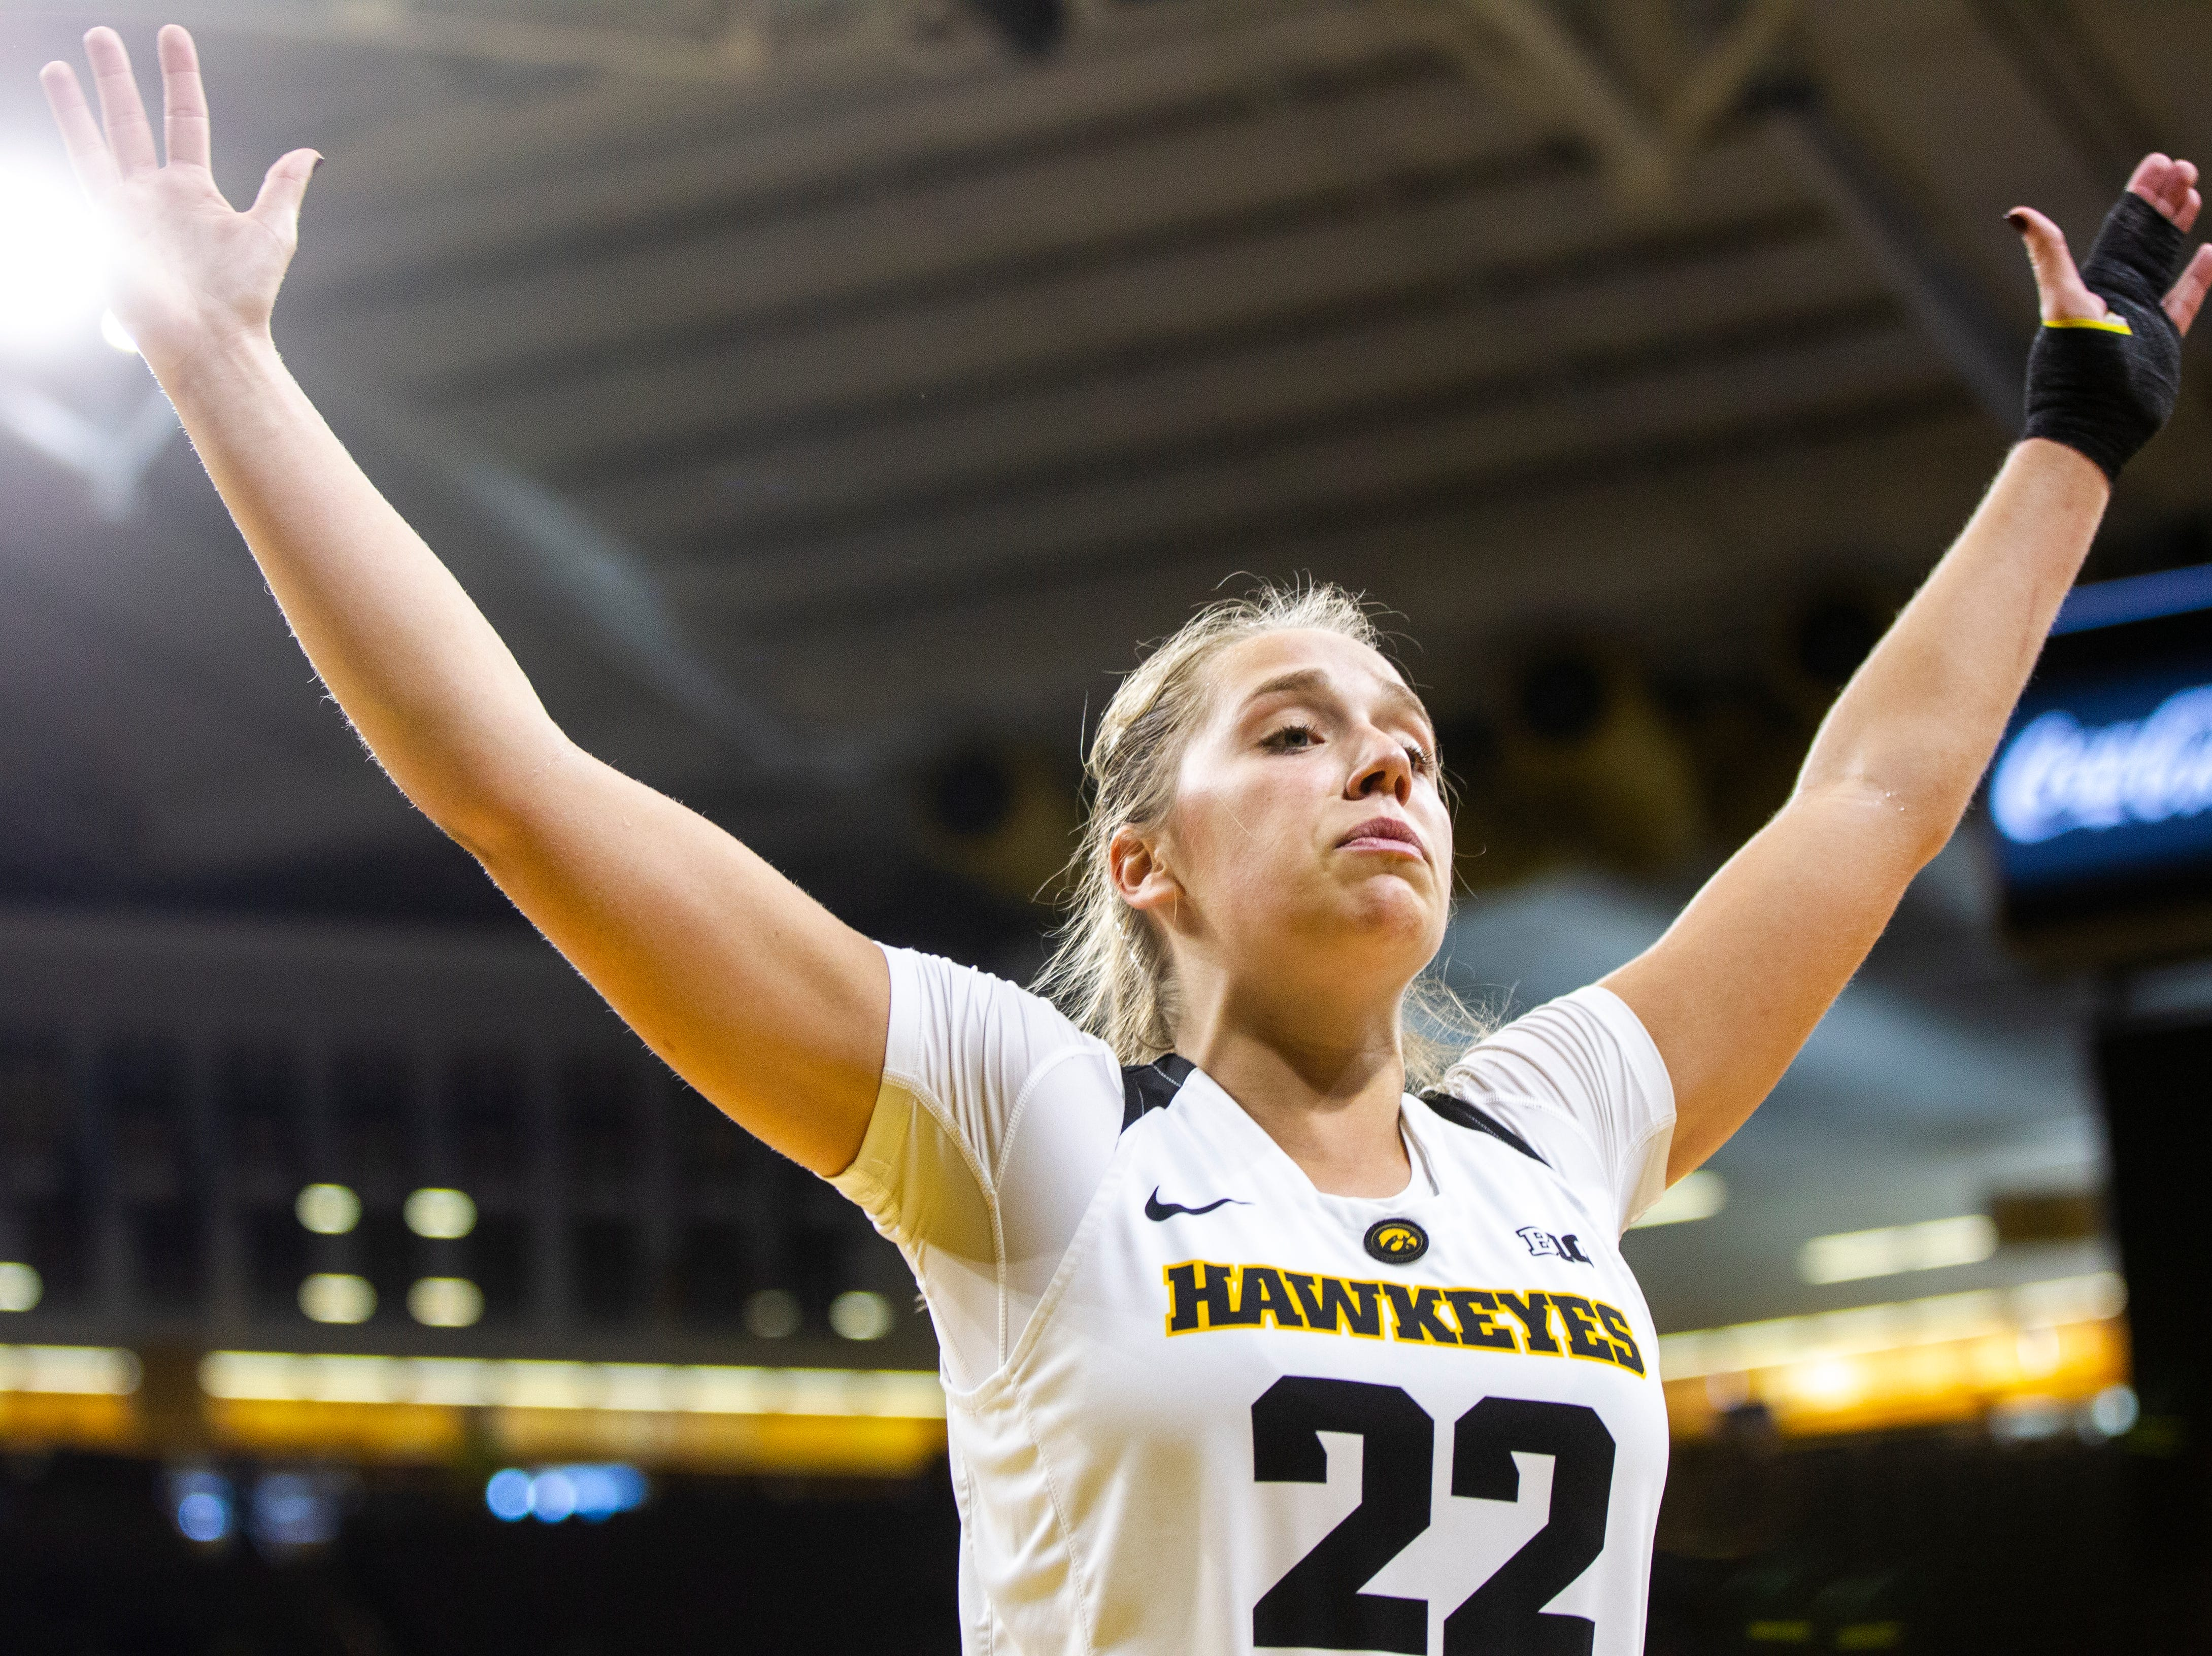 Iowa guard Kathleen Doyle (22) defends an inbound during a NCAA women's basketball game on Sunday, Dec. 16, 2018, at Carver-Hawkeye Arena in Iowa City.